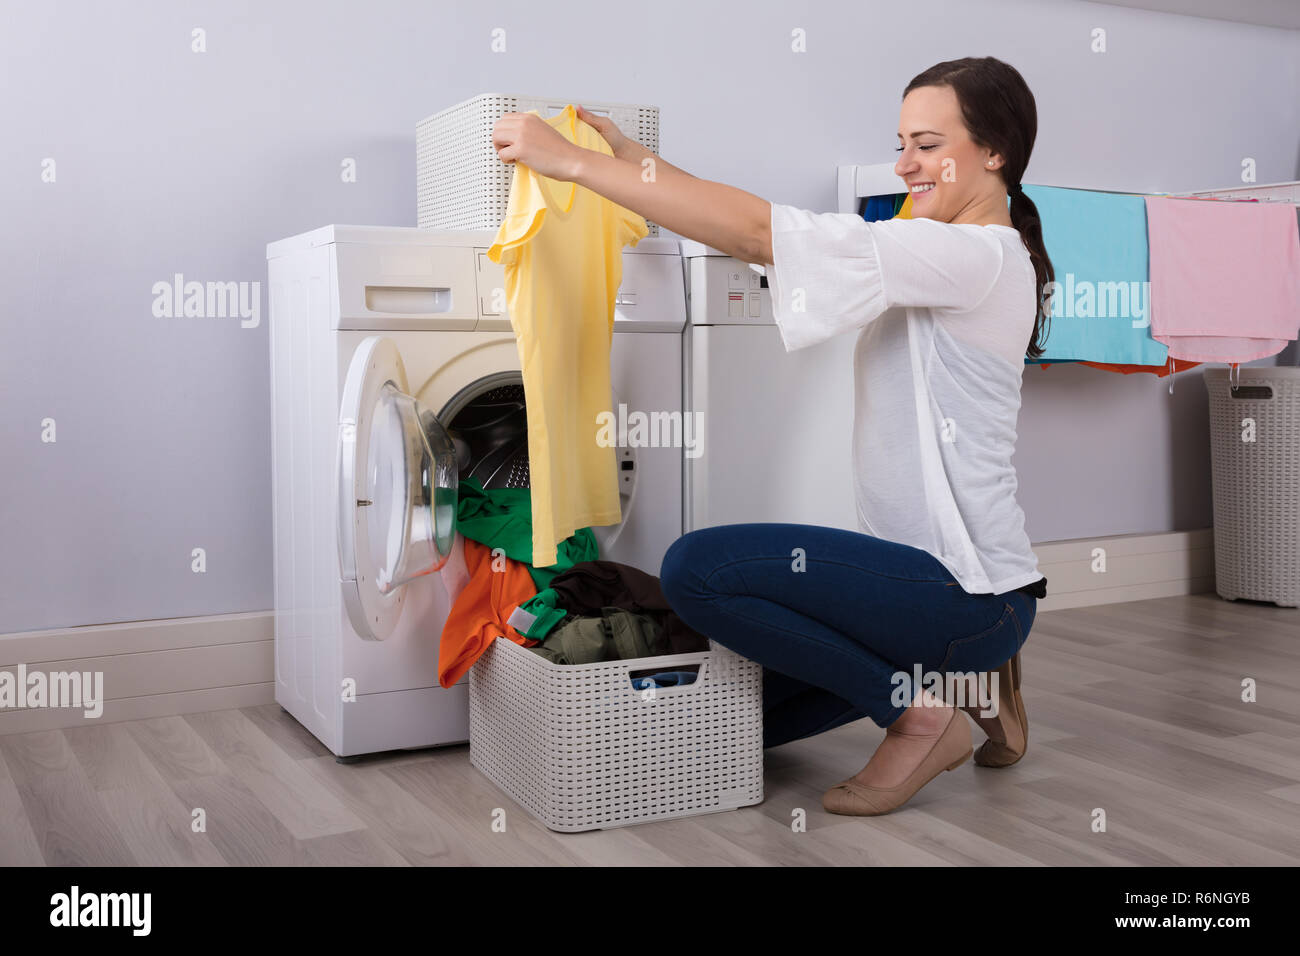 Woman Looking At Cleaned Yellow Tshirt In Laundry Room Stock Photo